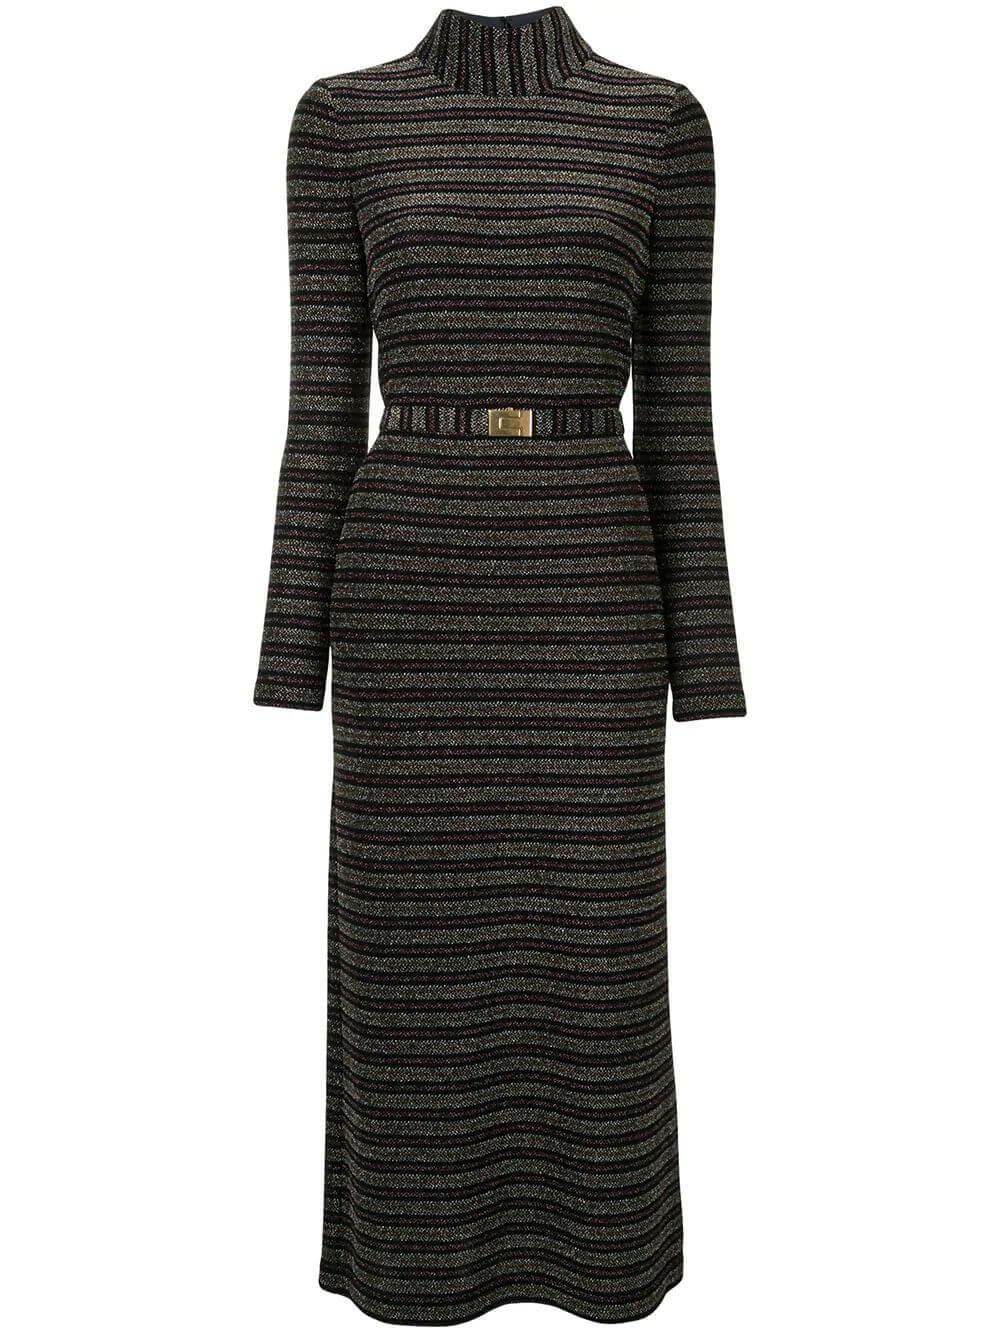 Striped Mock Neck Dress